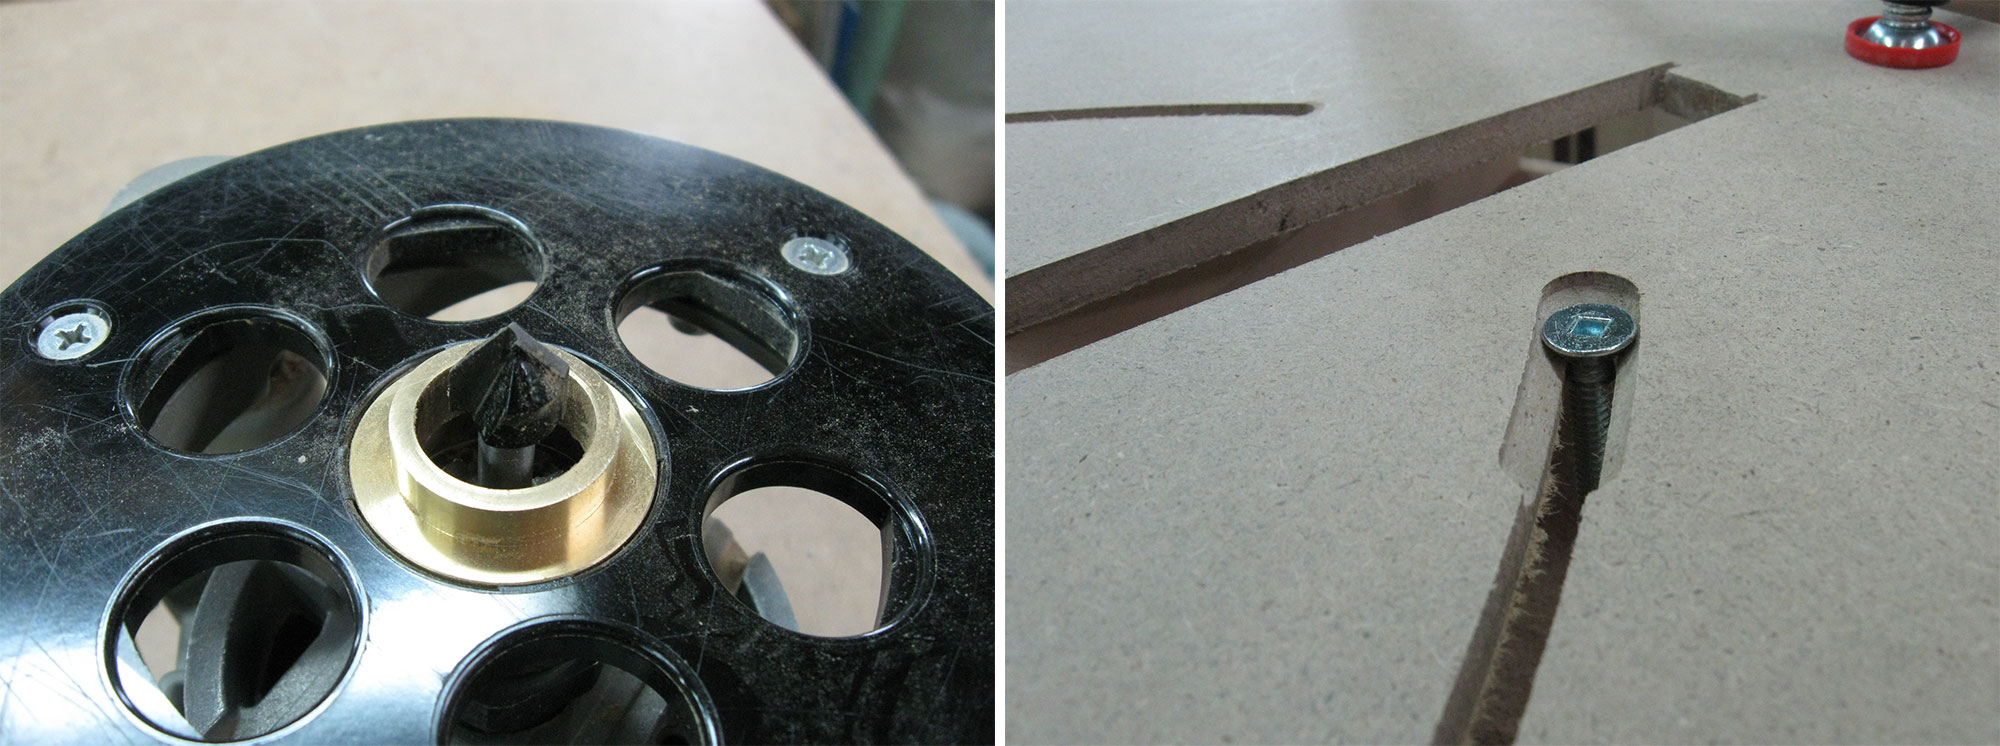 Left: V-groove bit installed in router. Right: Chamfered slot produced by V-bit.